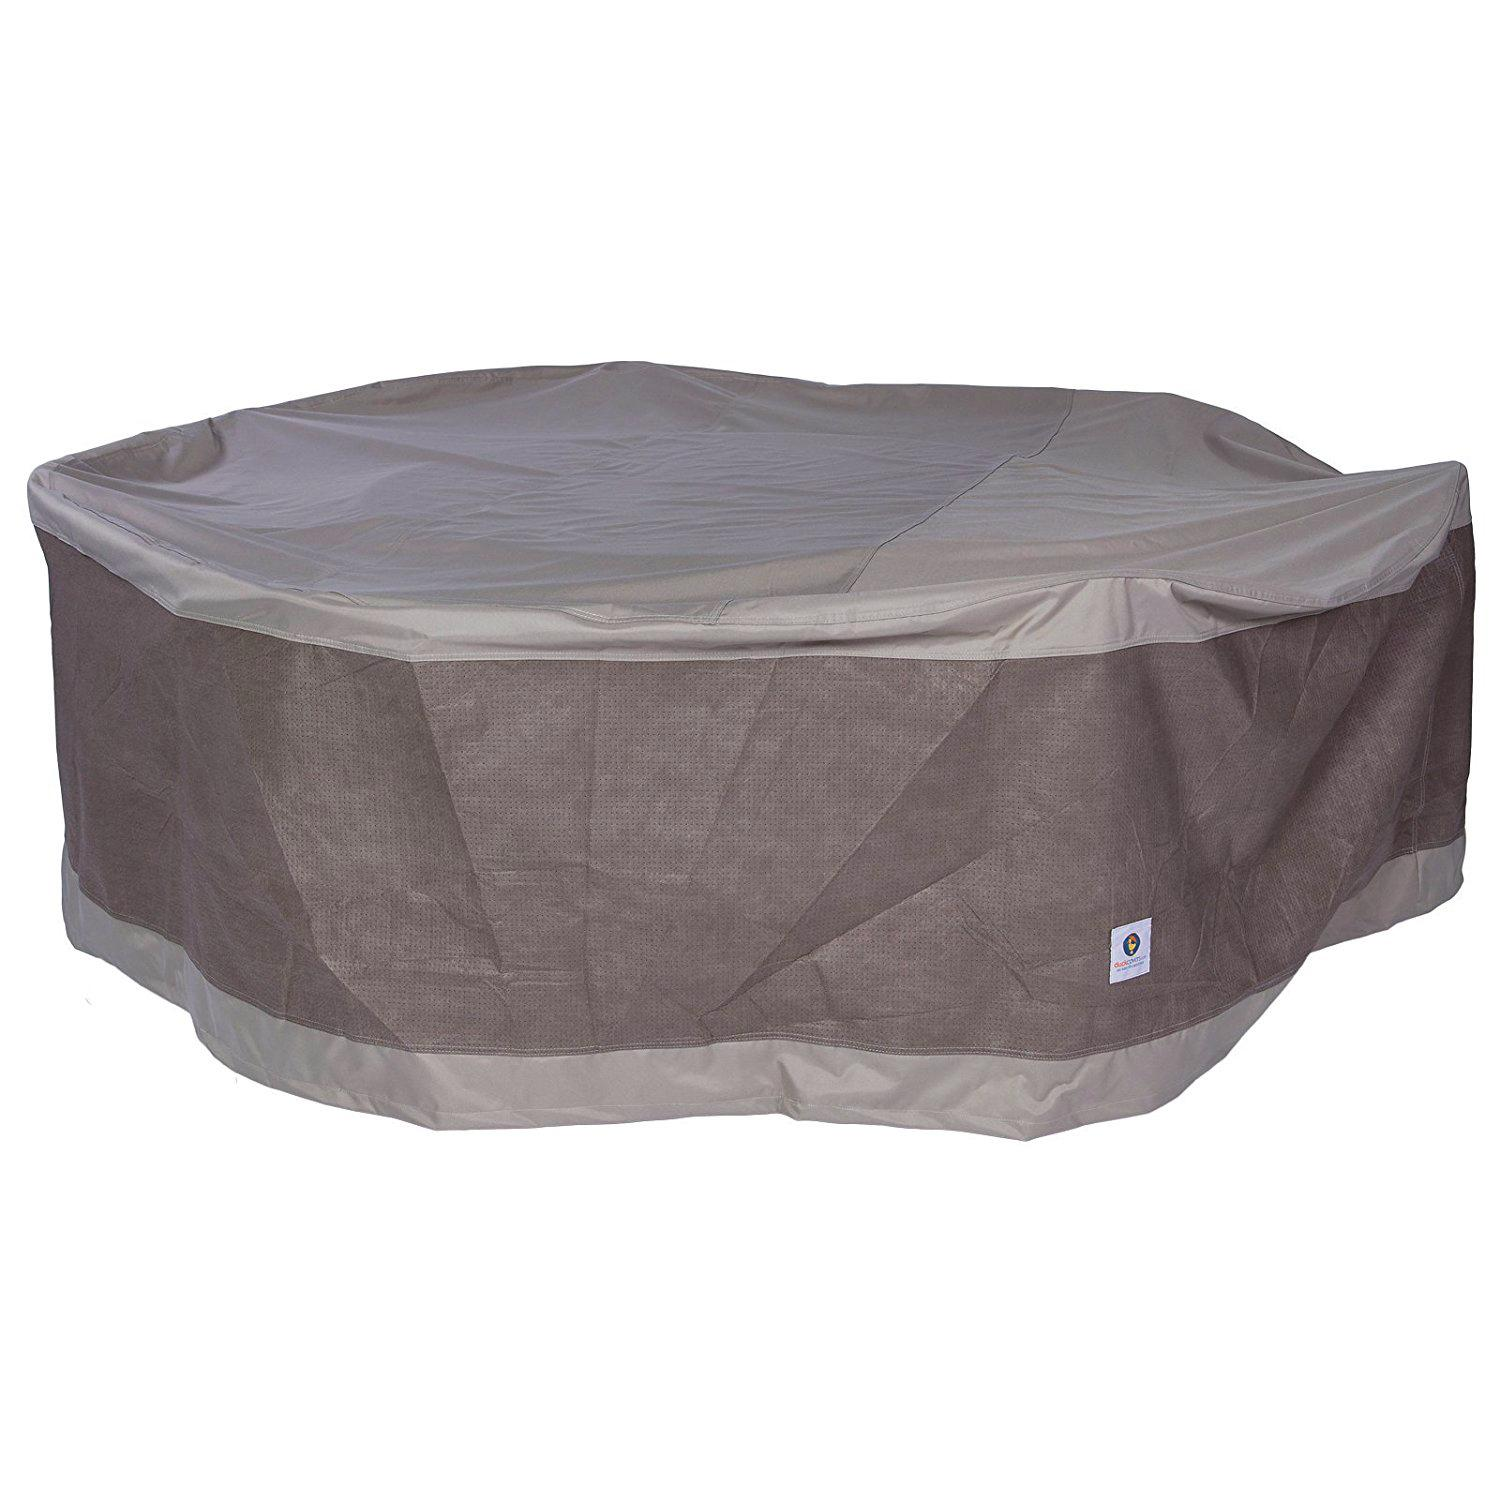 Duck Covers Elegant Patio Chaise Lounge Cover Fits